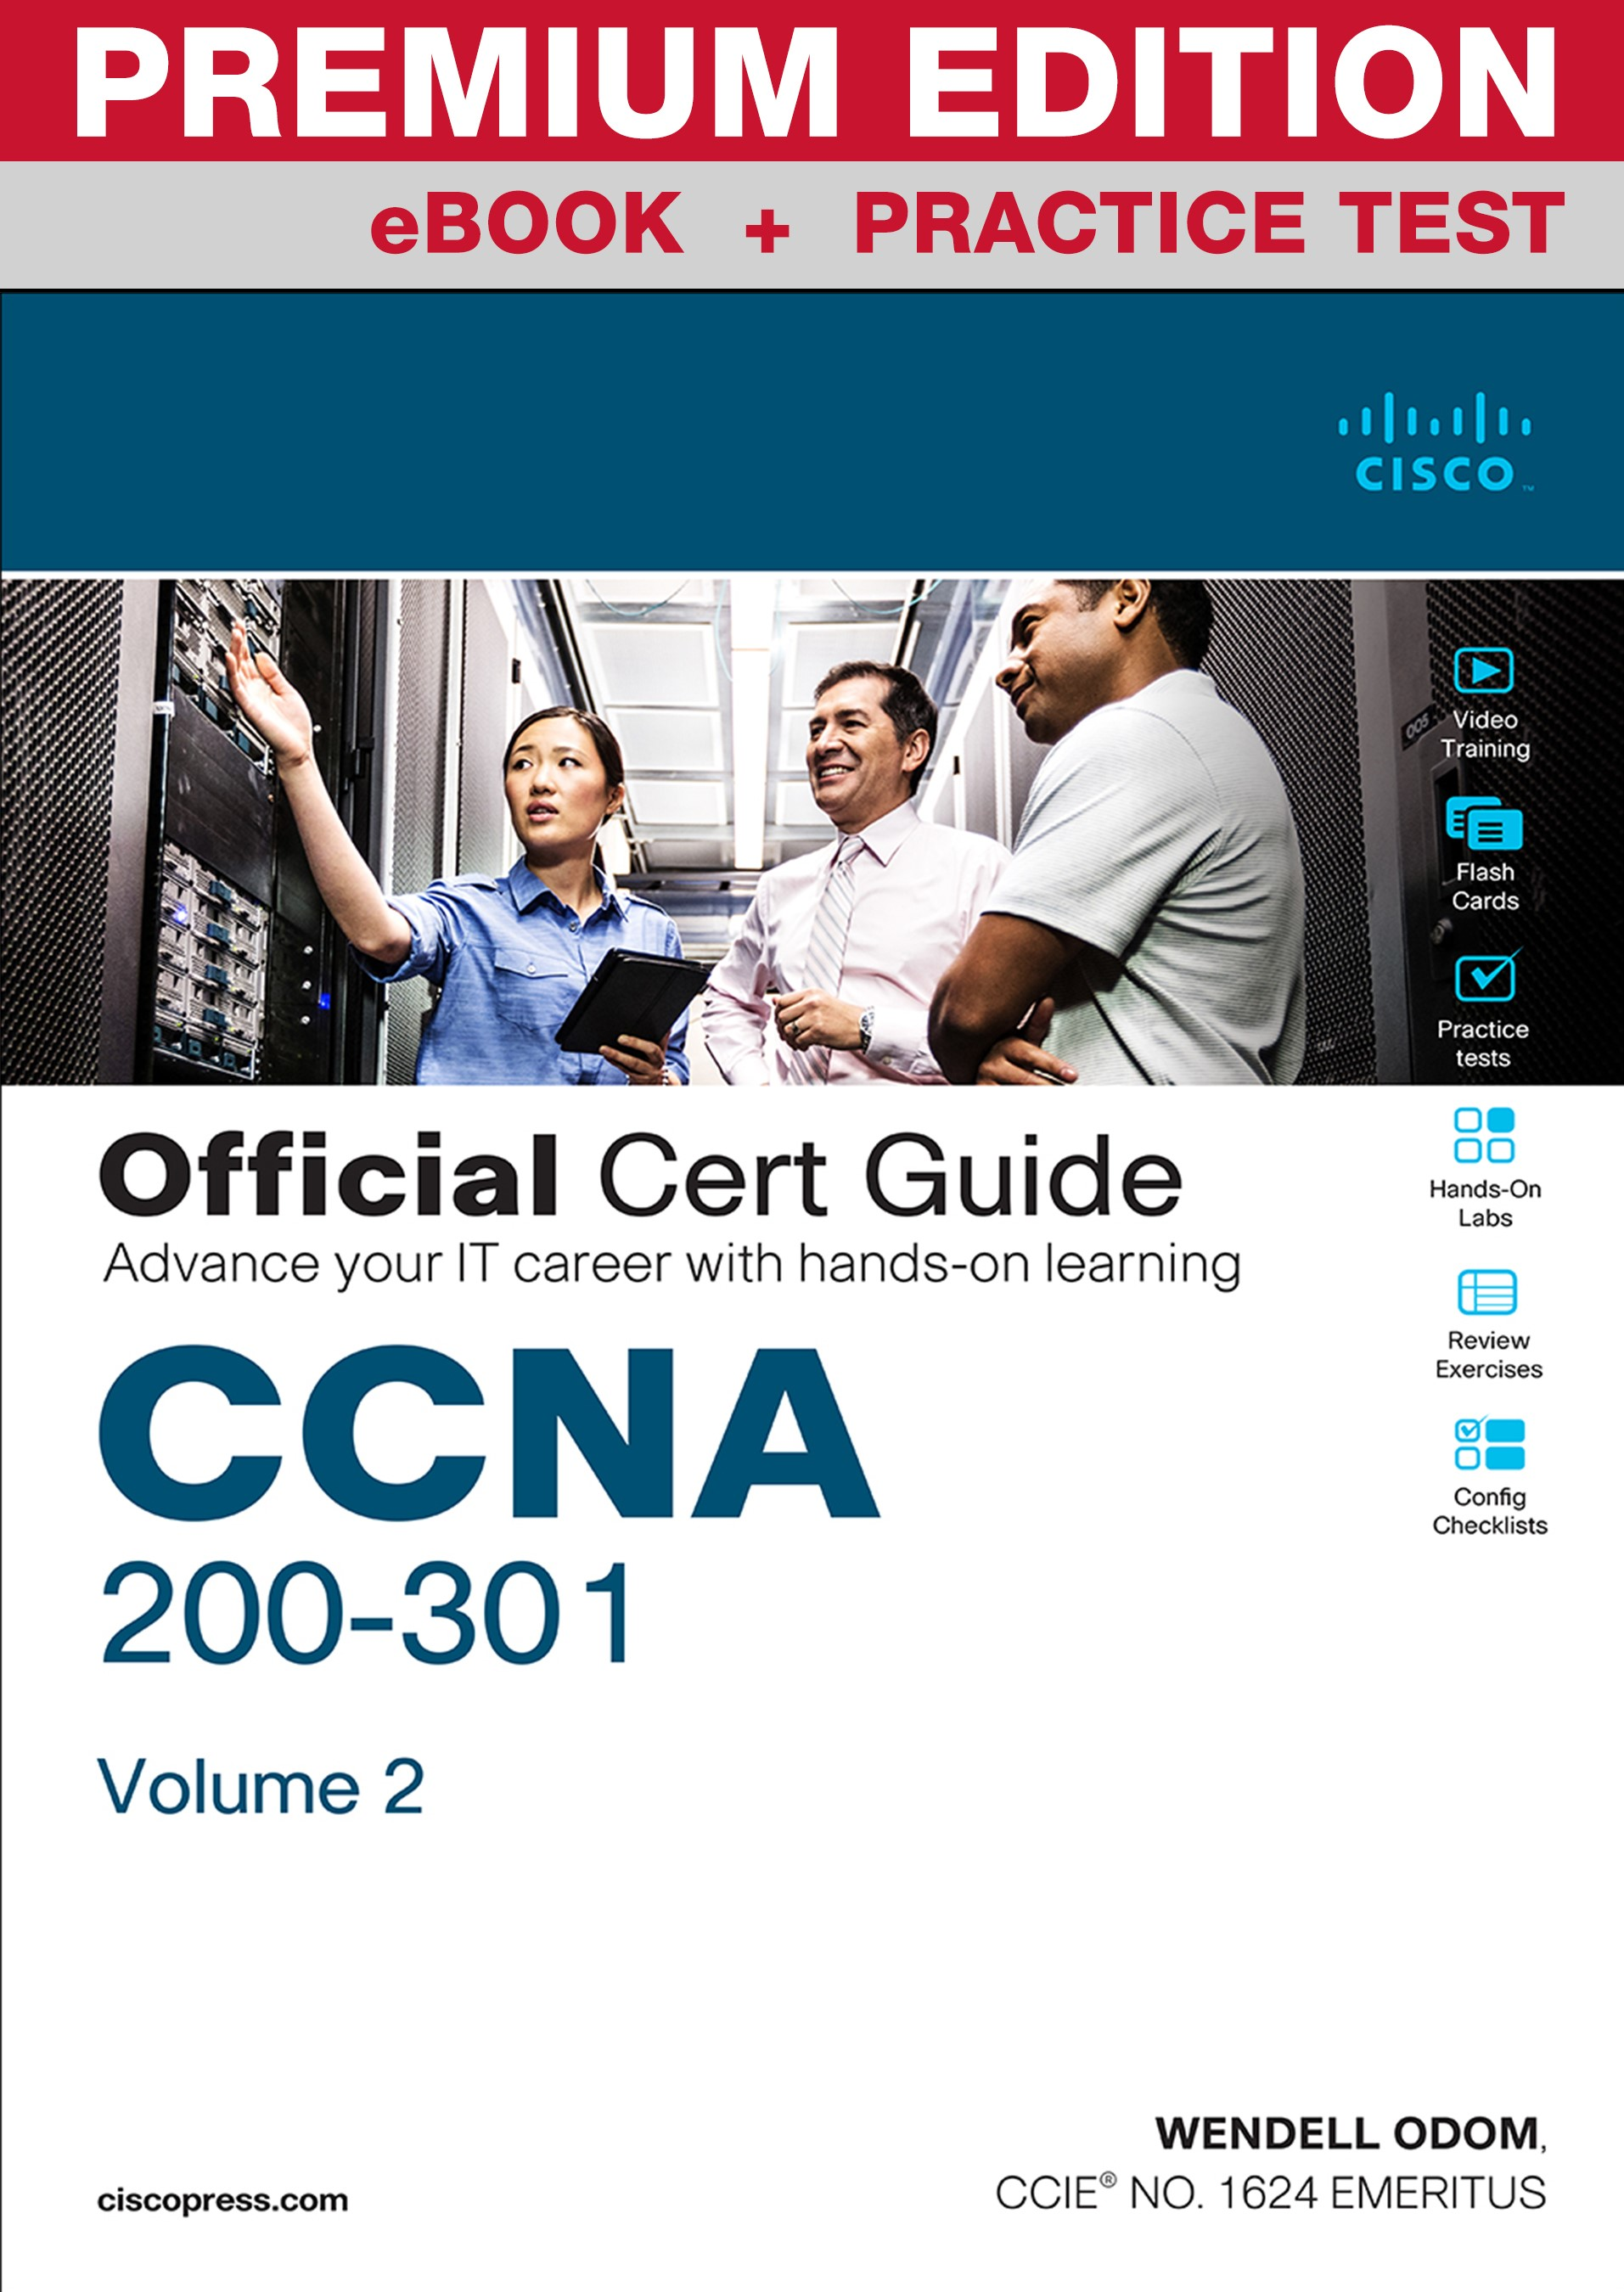 CCNA 200-301 Official Cert Guide, Volume 2 Premium Edition eBook and Practice Test